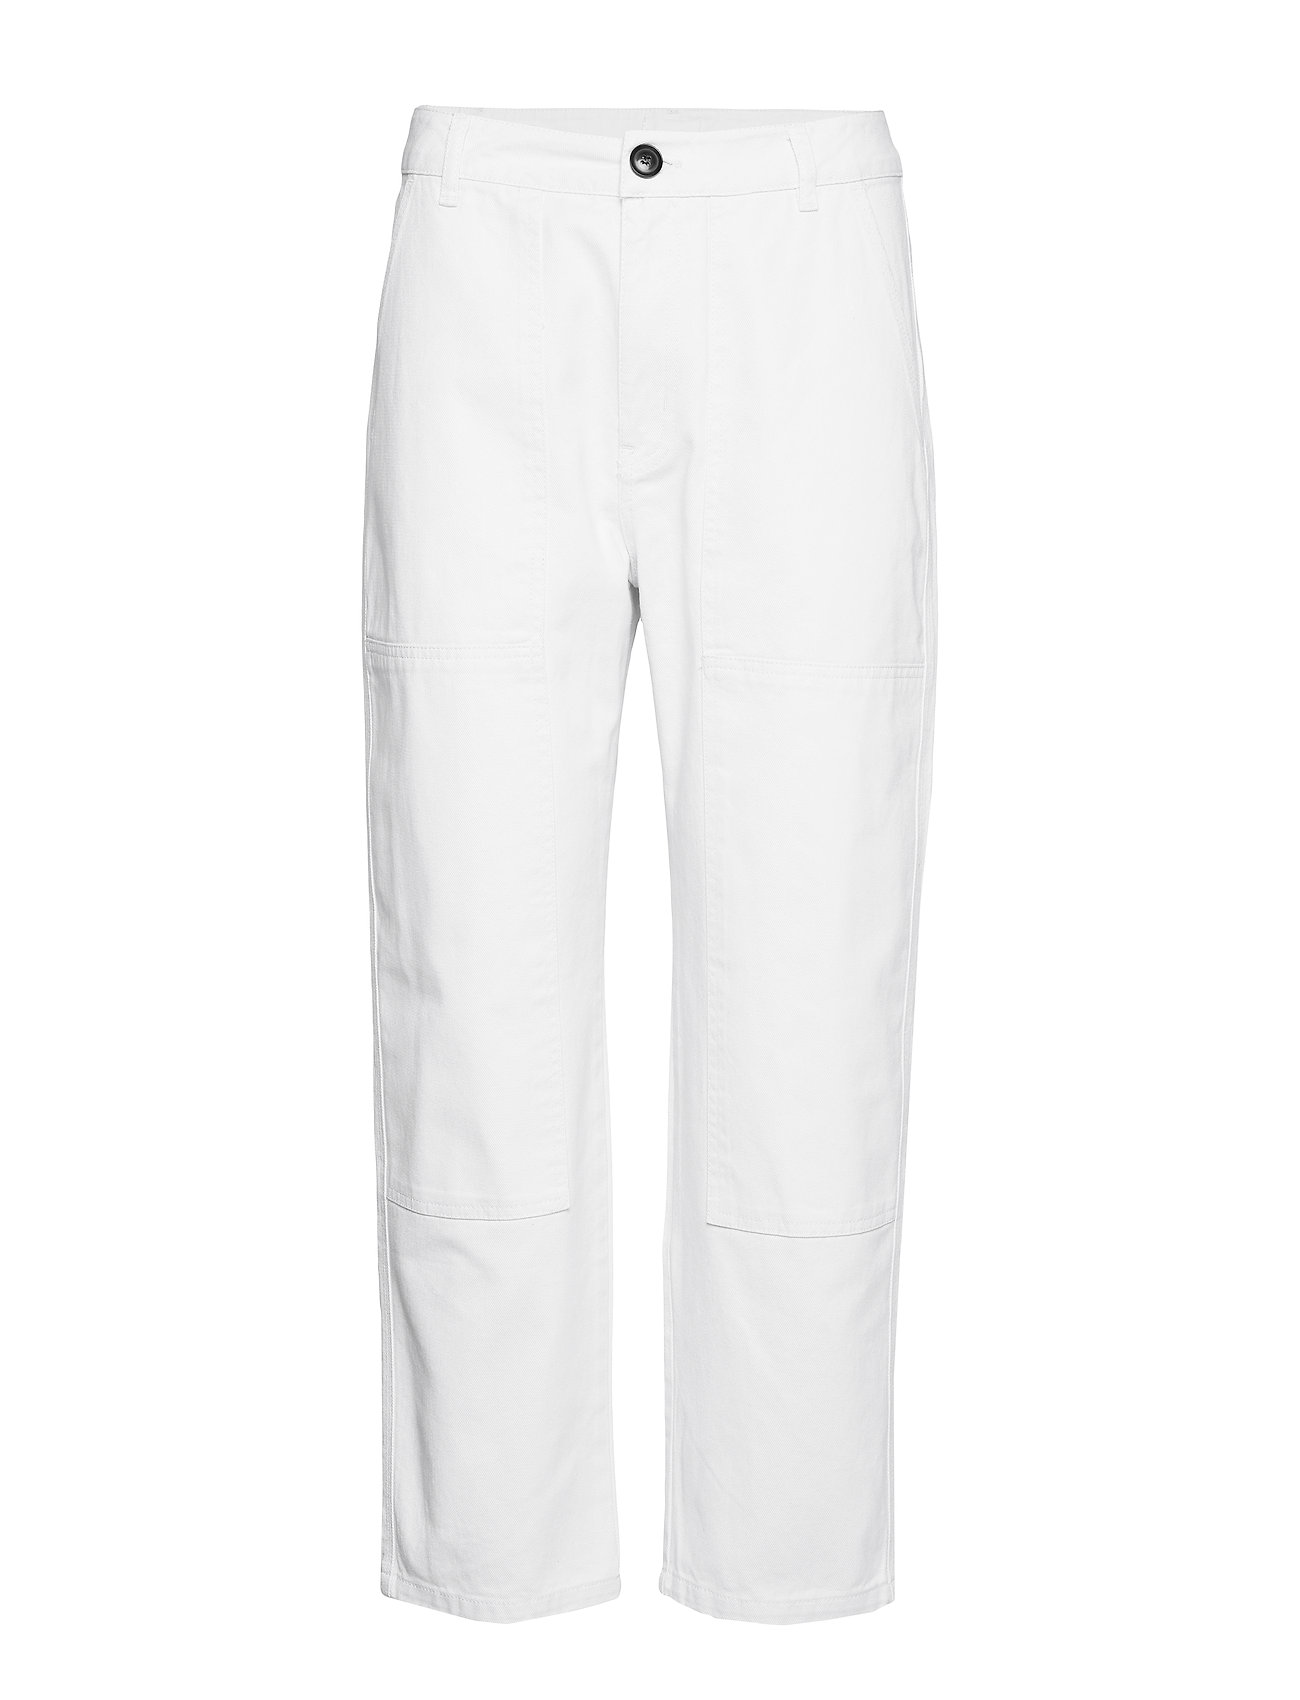 Wood Wood Esther trousers - OFF-WHITE